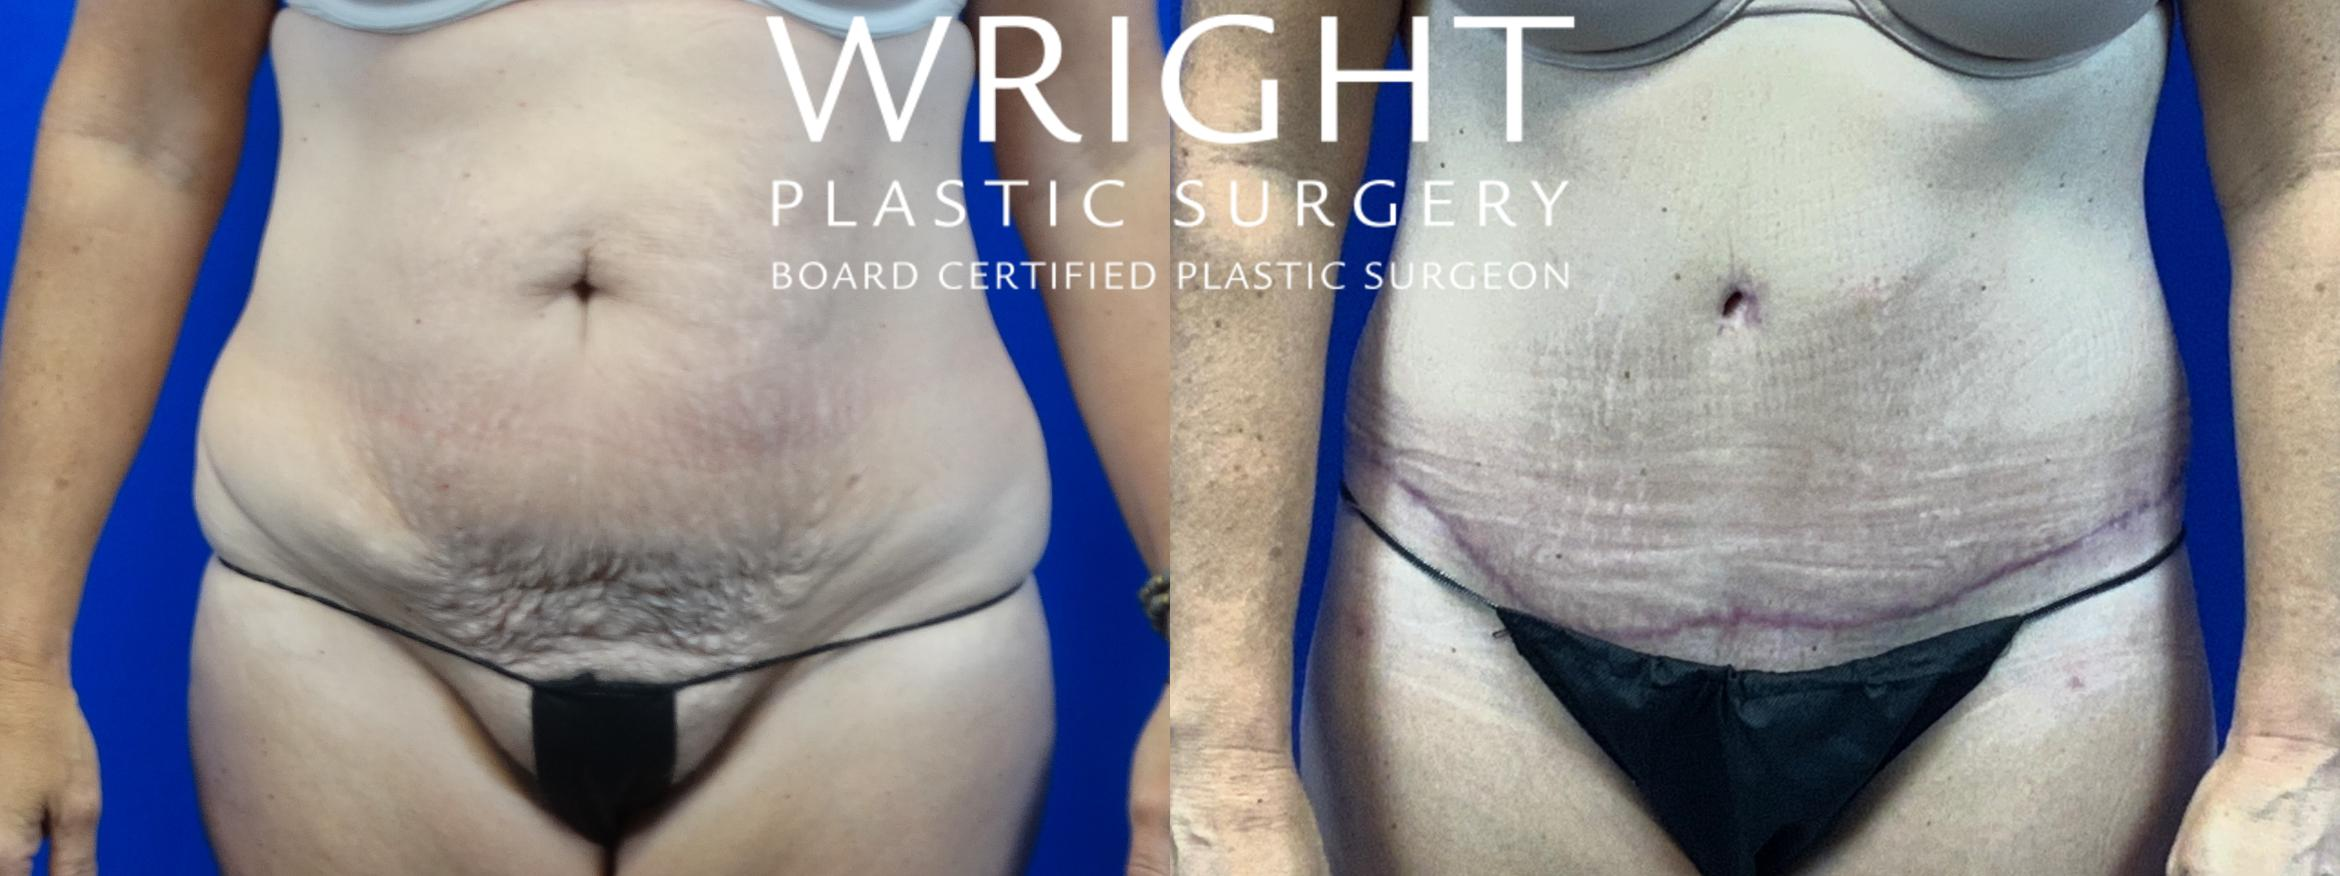 Tummy Tuck Case 29 Before & After Front | Little Rock, Arkansas | Dr. Wright Plastic Surgery